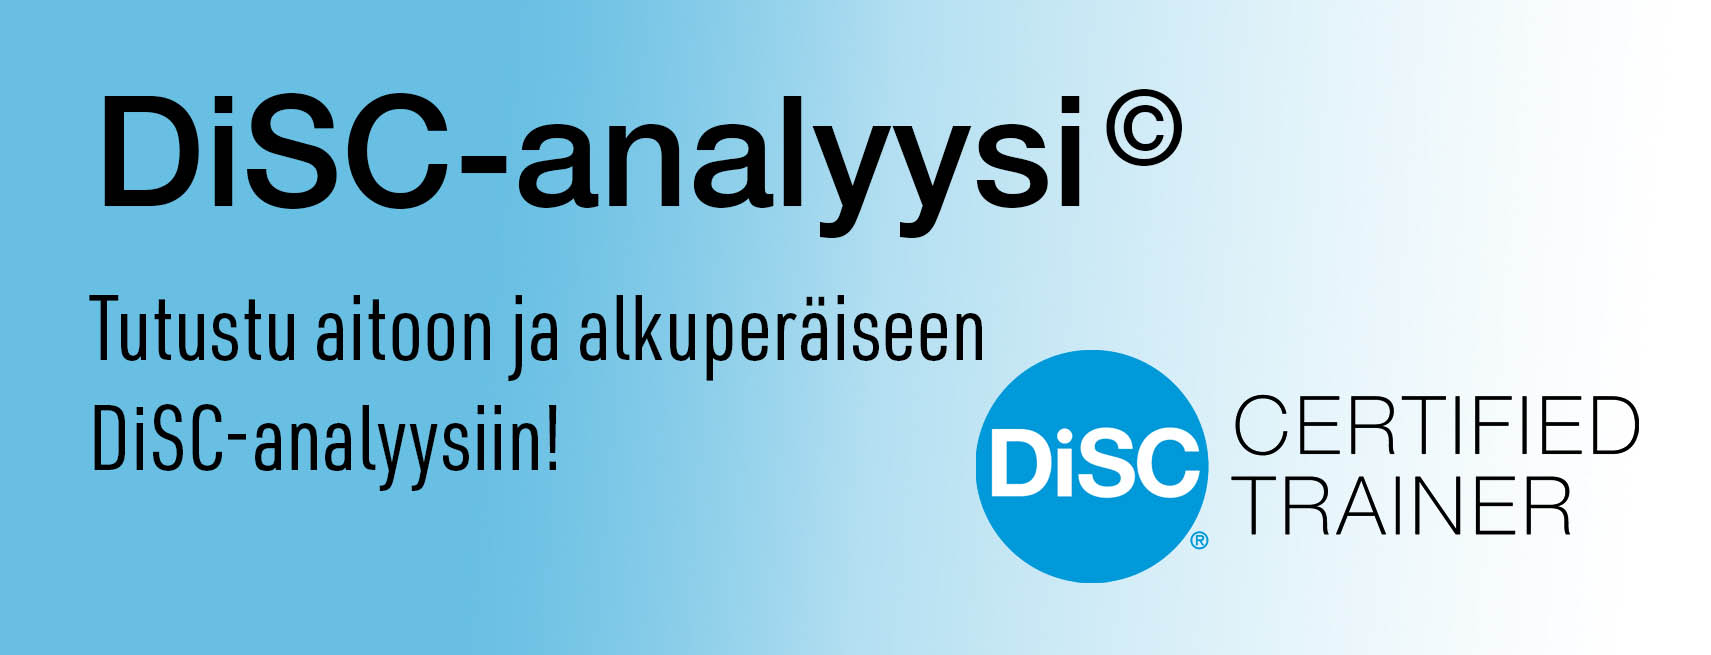 Disc-analyysi